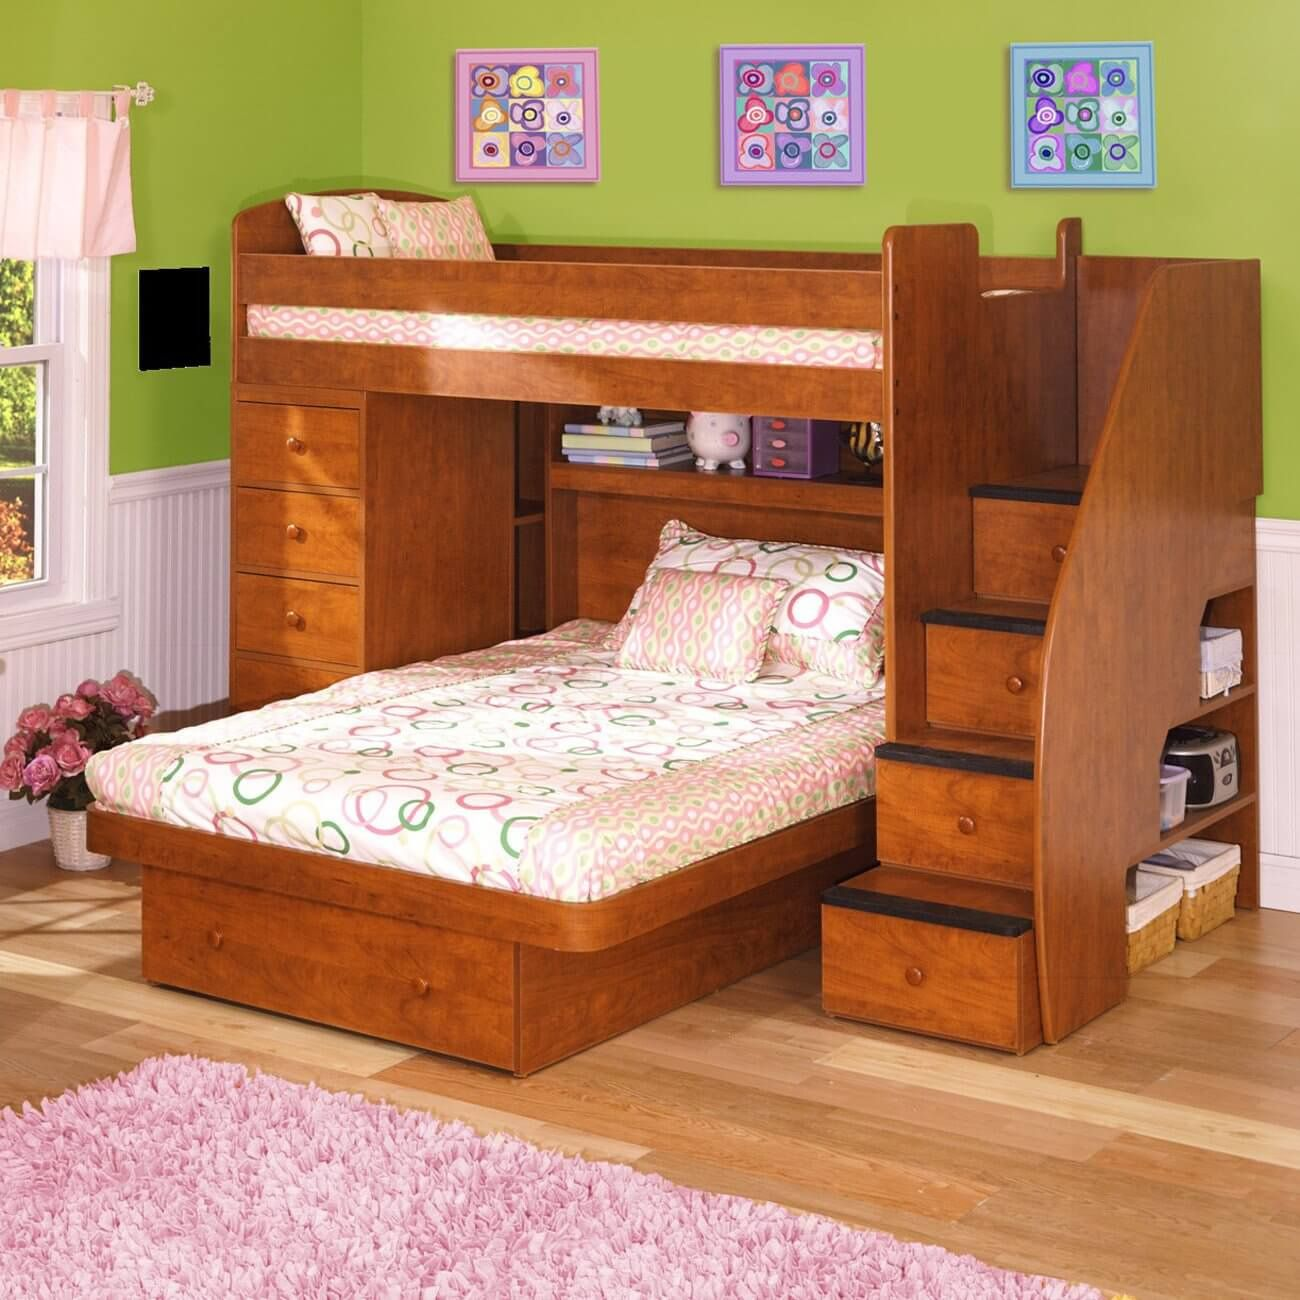 Loft bed with slide and desk  Bunk Beds with A Full Bed On the Bottom  Modern Interior Paint